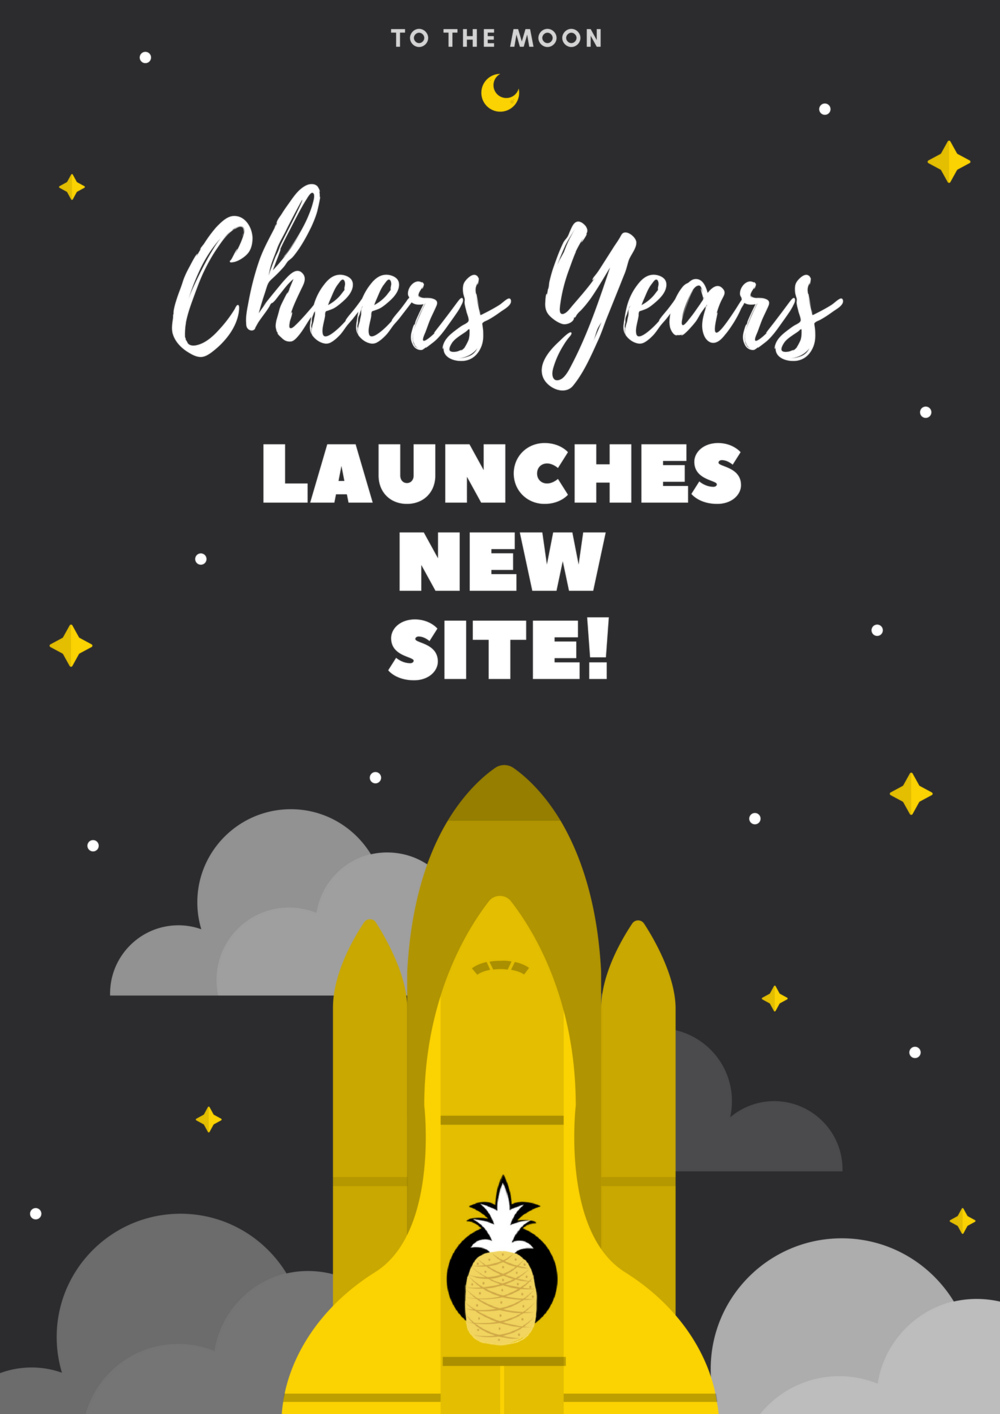 Cheers Years launches new site.png